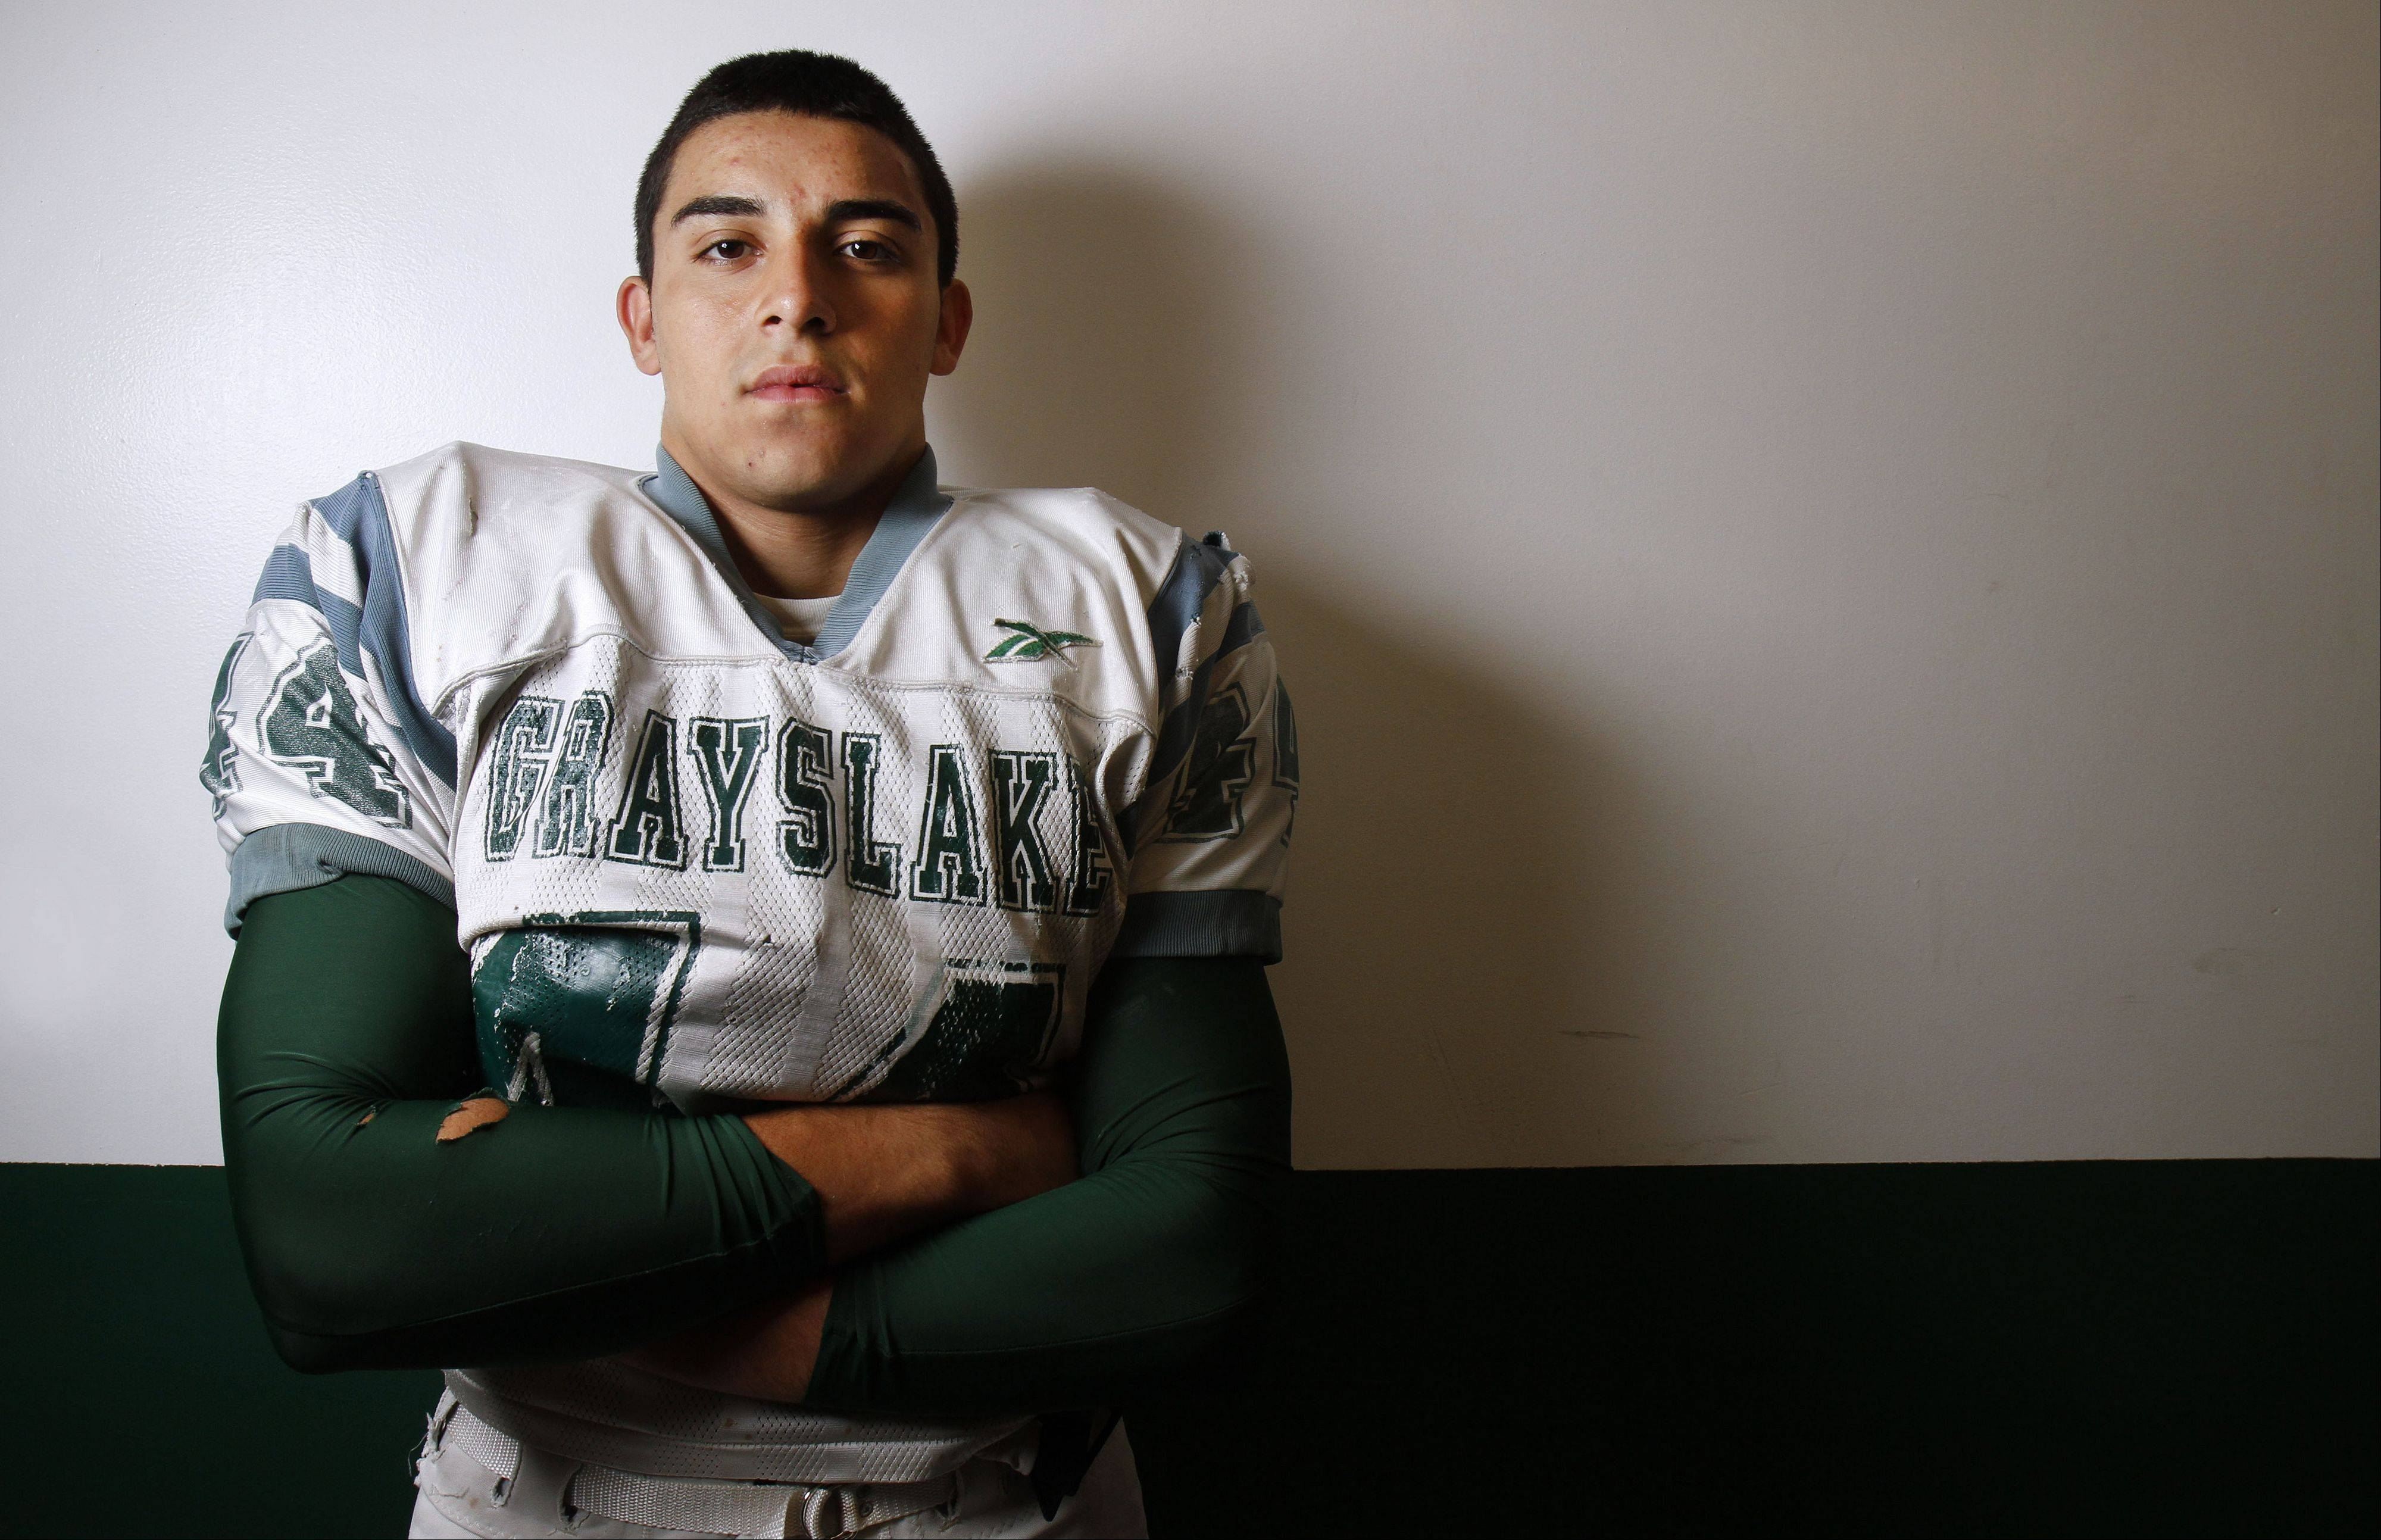 Grayslake Central running back Joey Valdivia is a three year started and a big reason the Rams are having their bast season in years.